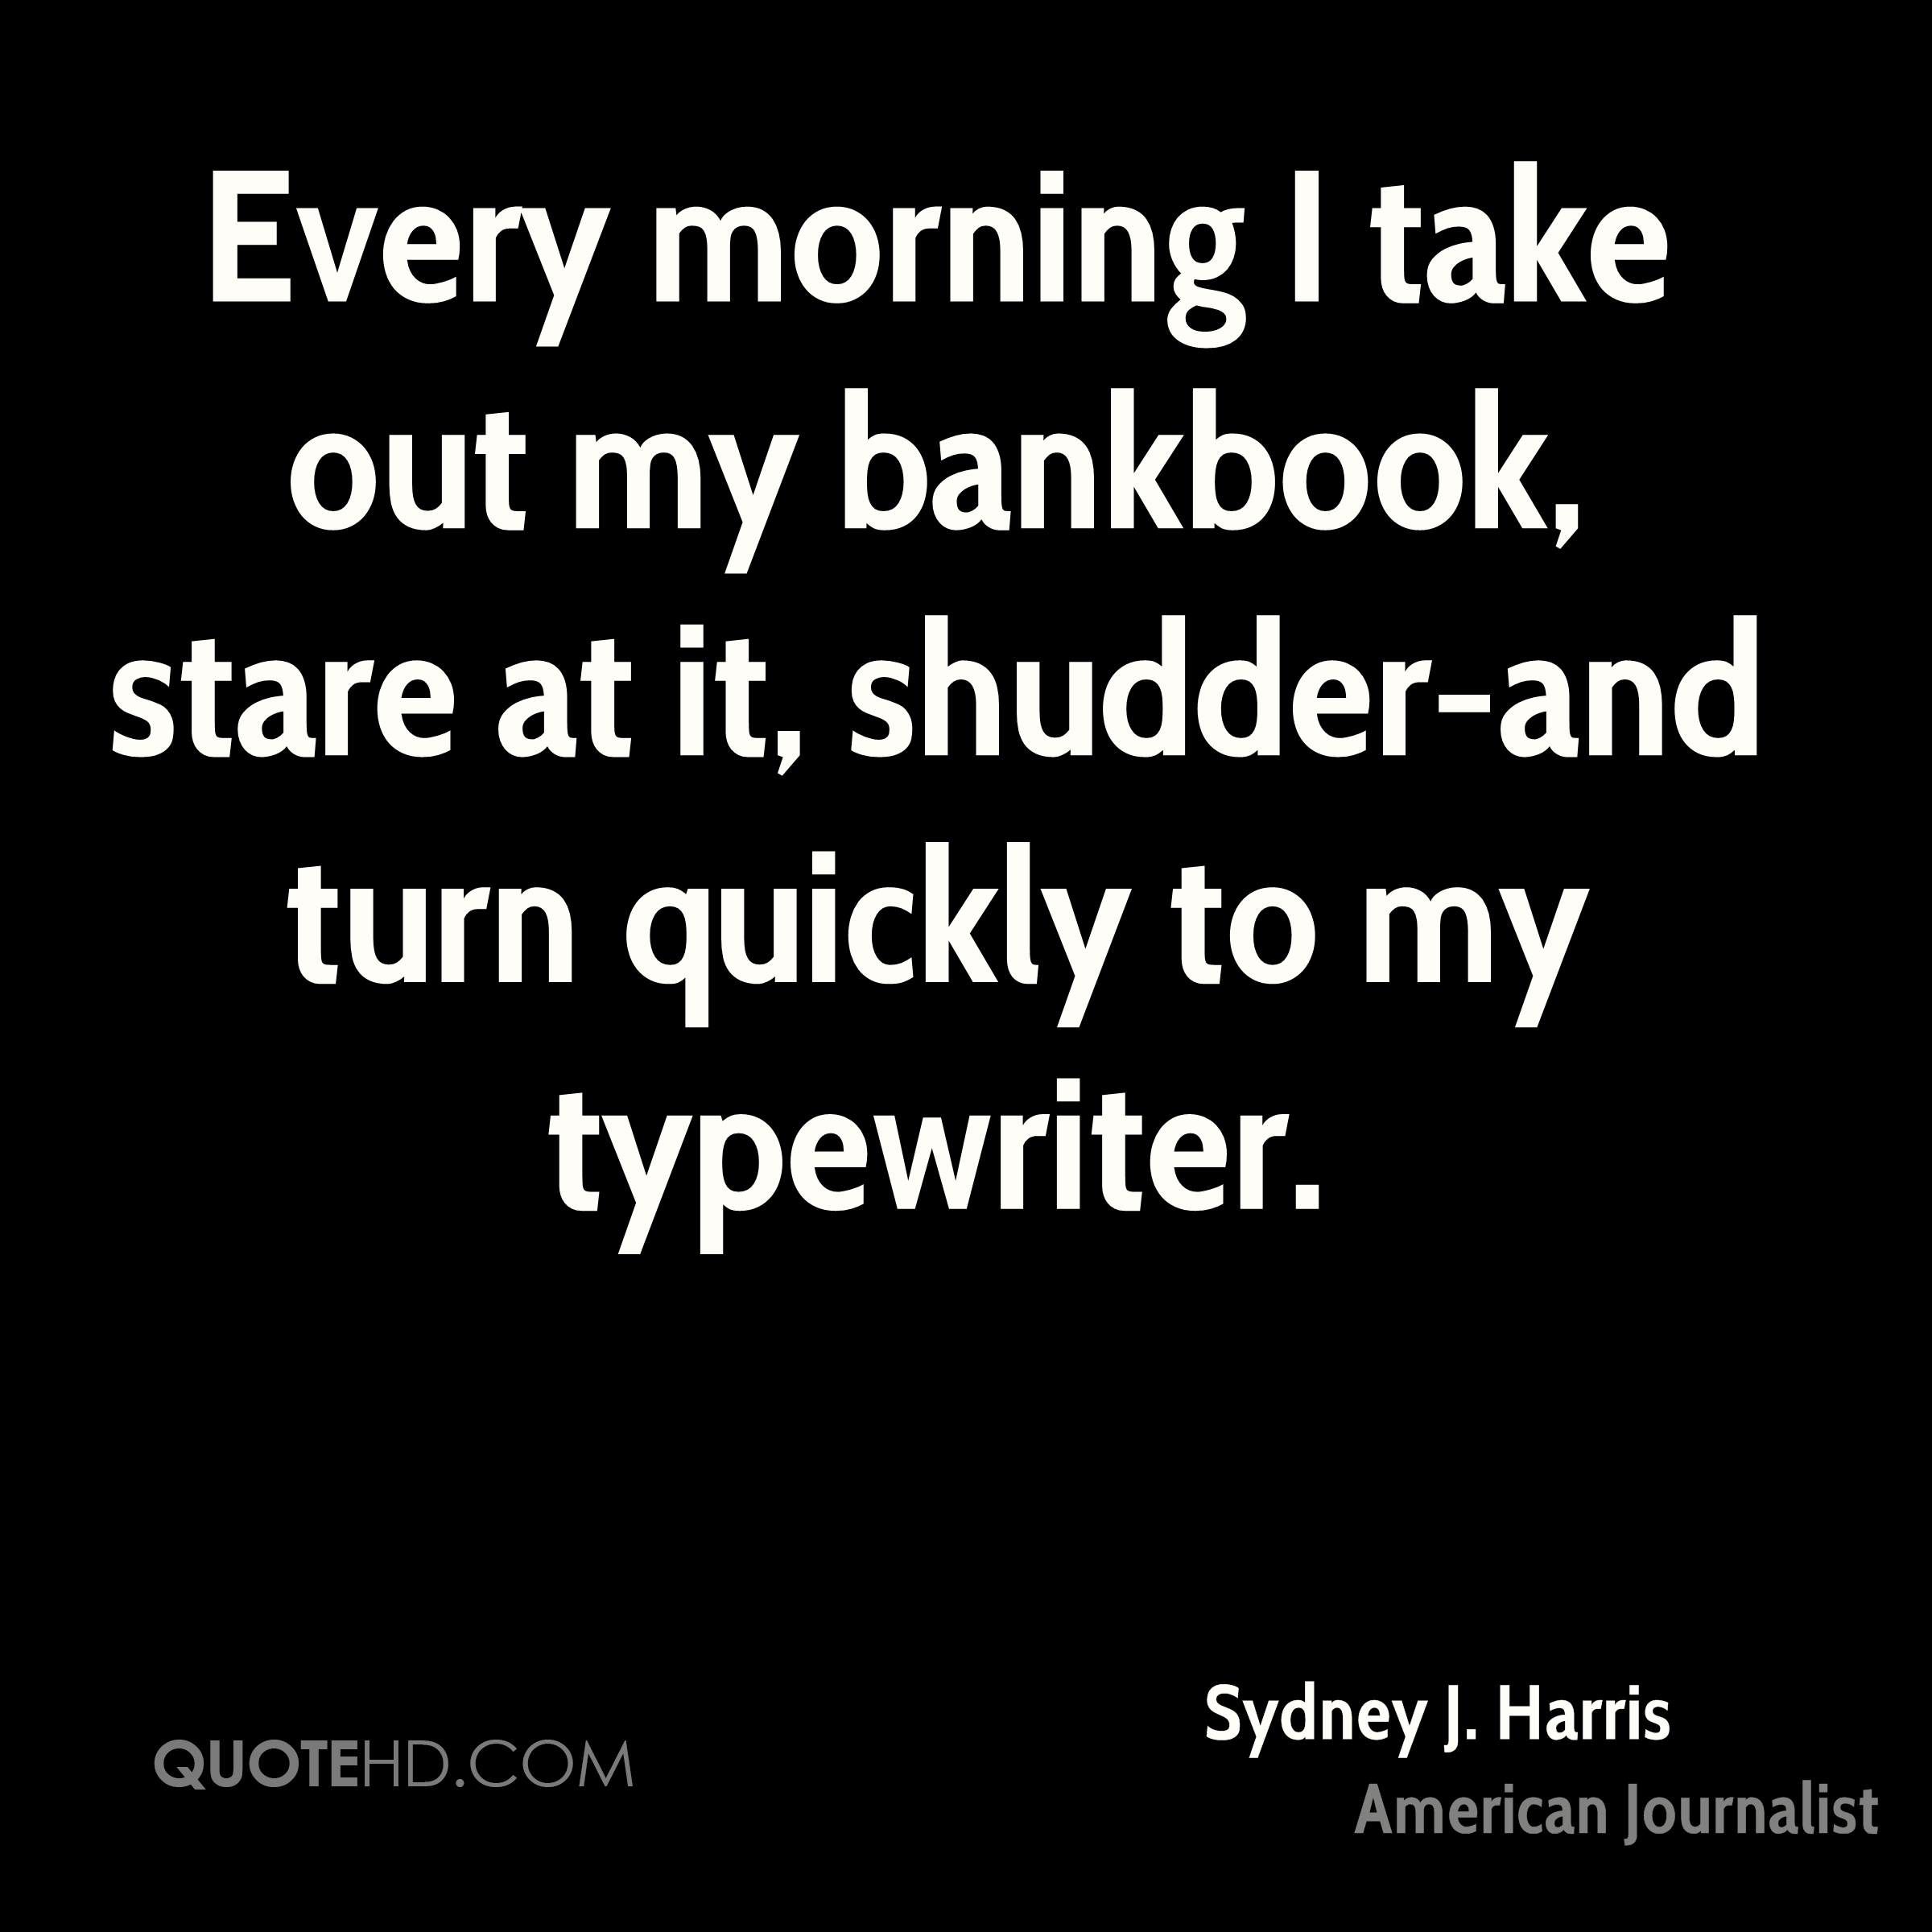 Every morning I take out my bankbook, stare at it, shudder-and turn quickly to my typewriter.